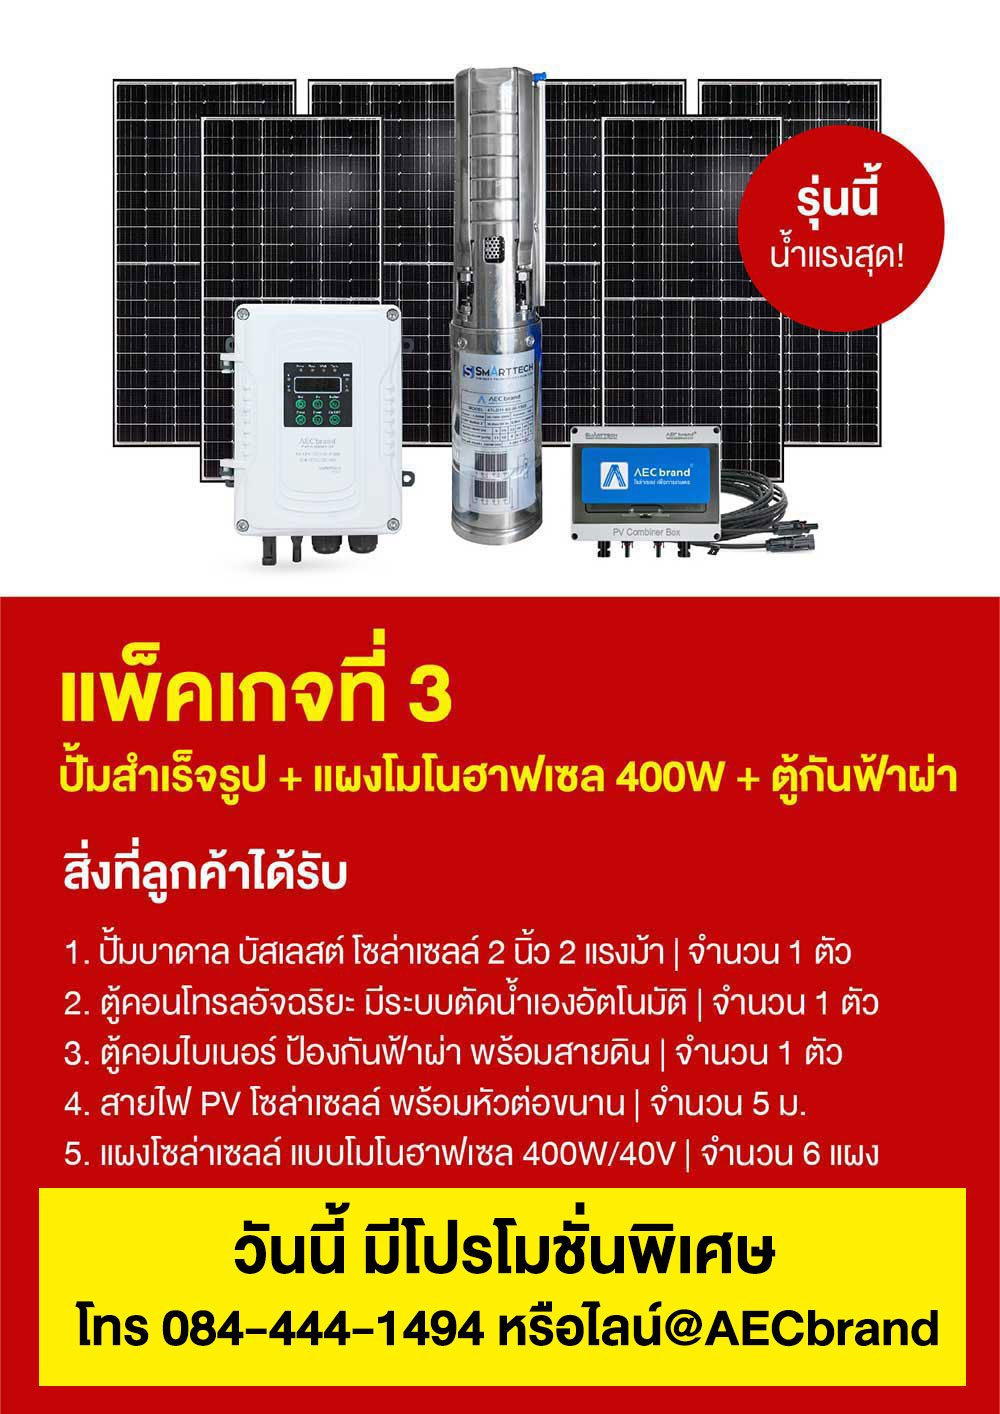 Pro6-submersible2-2Solarcell